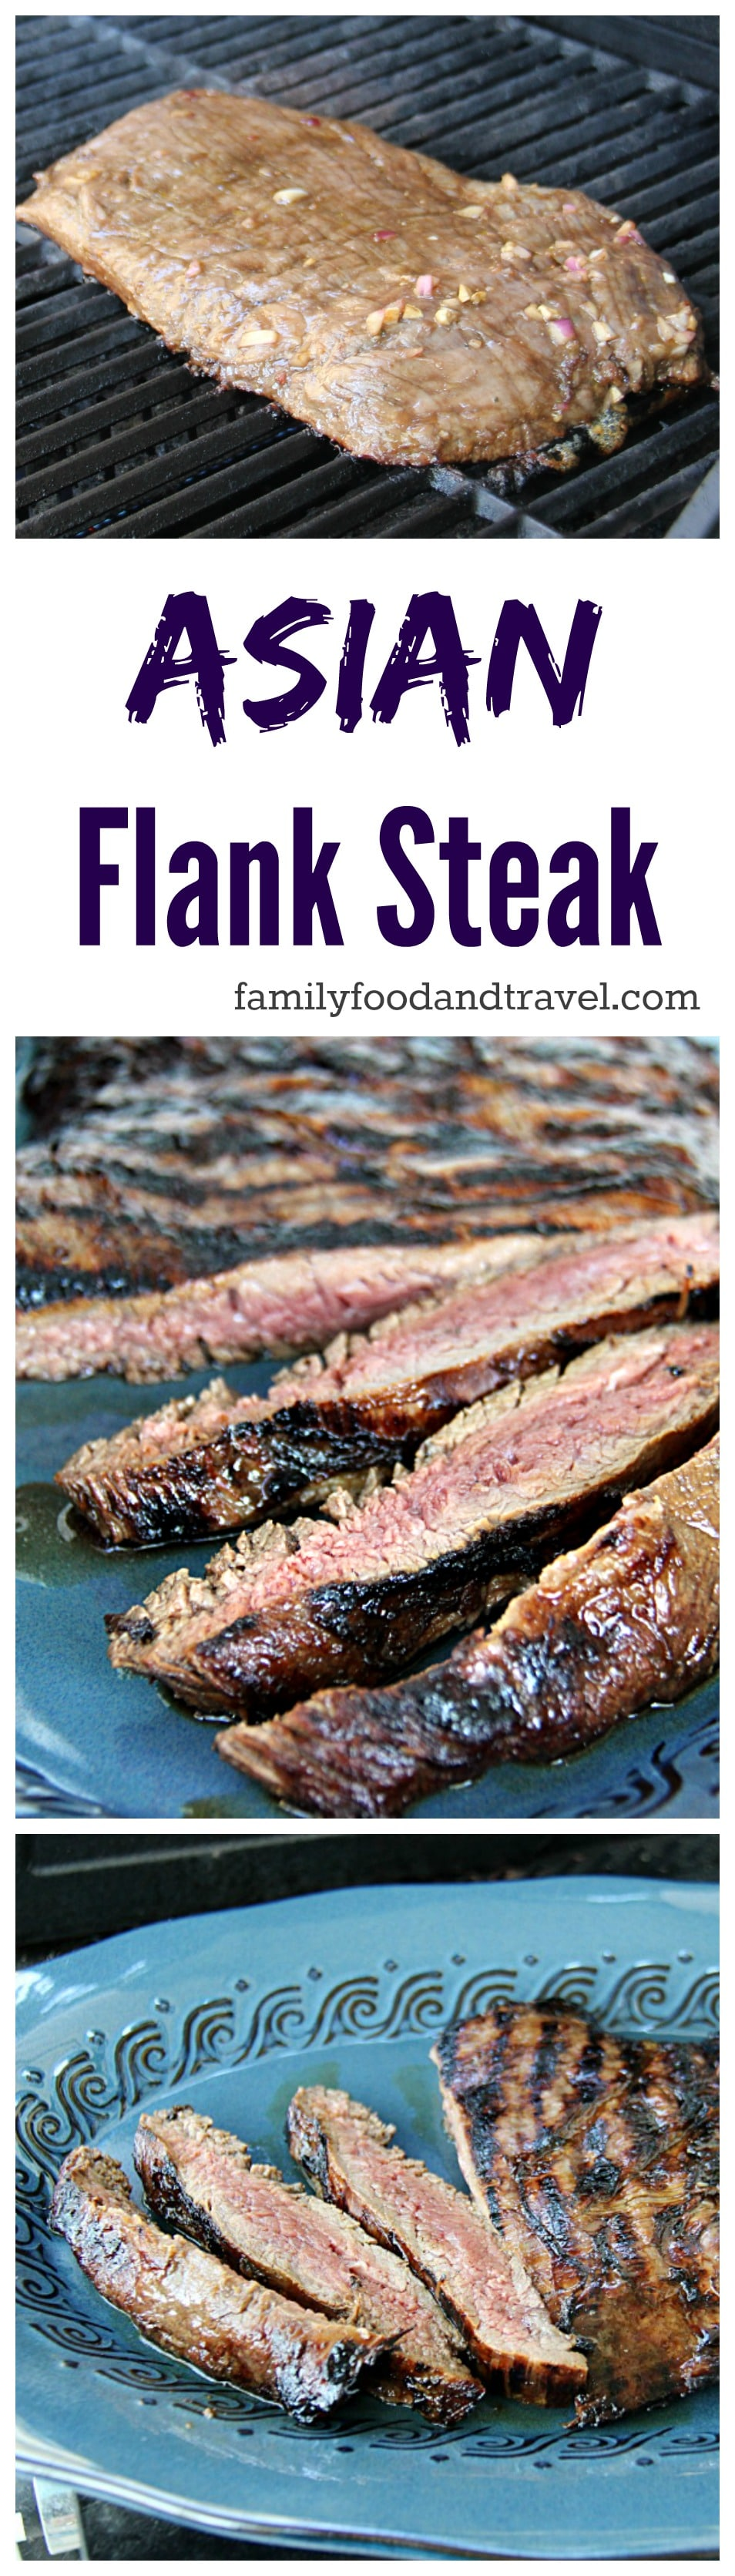 Asian Flank Steak Recipe